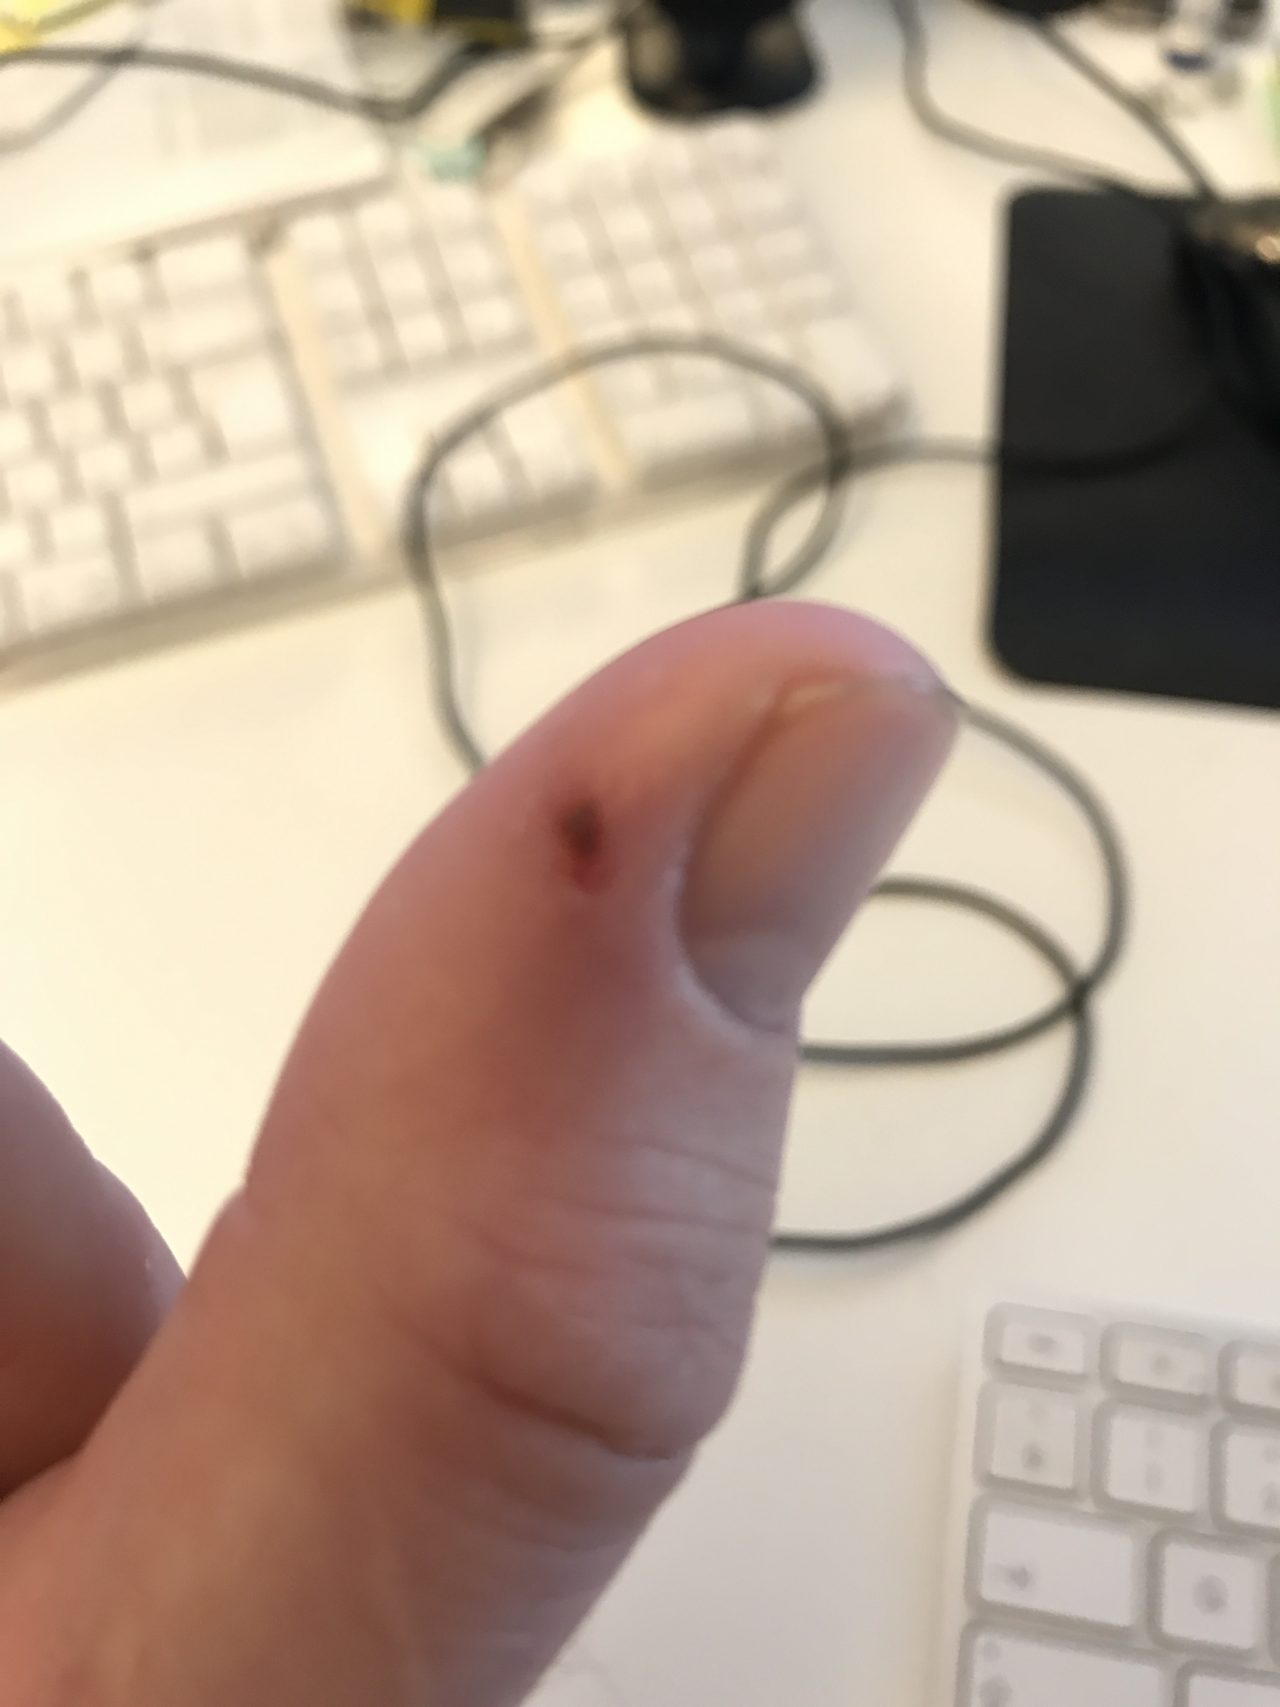 Injured Thumb With A Slight Cut